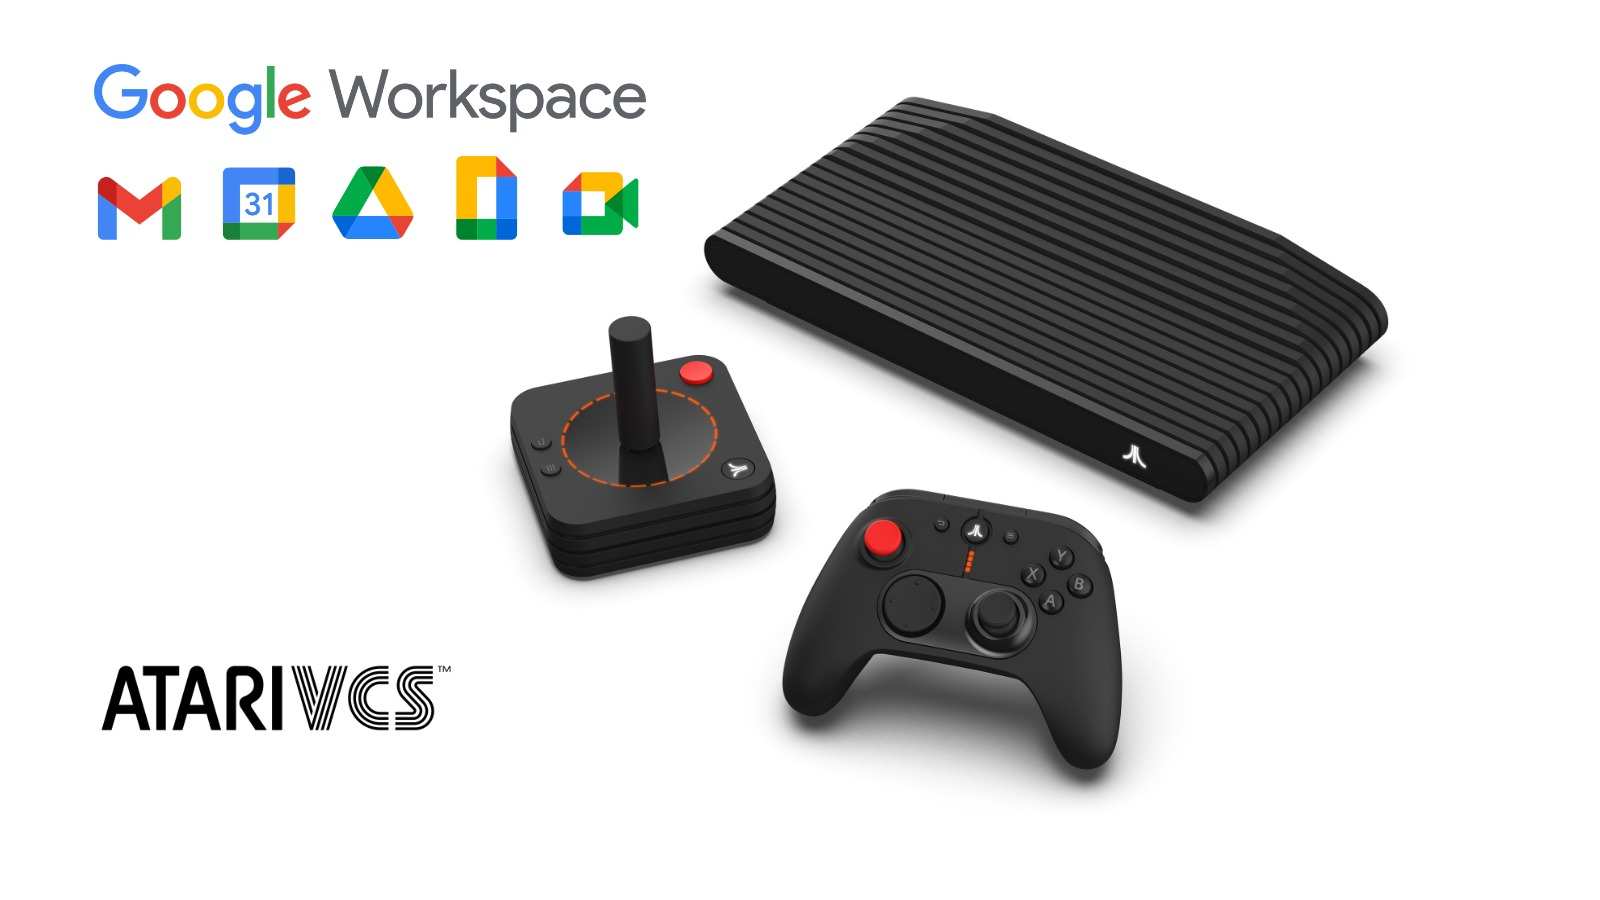 The Atari VCS just merged work and play with this Google Workspace upgrade